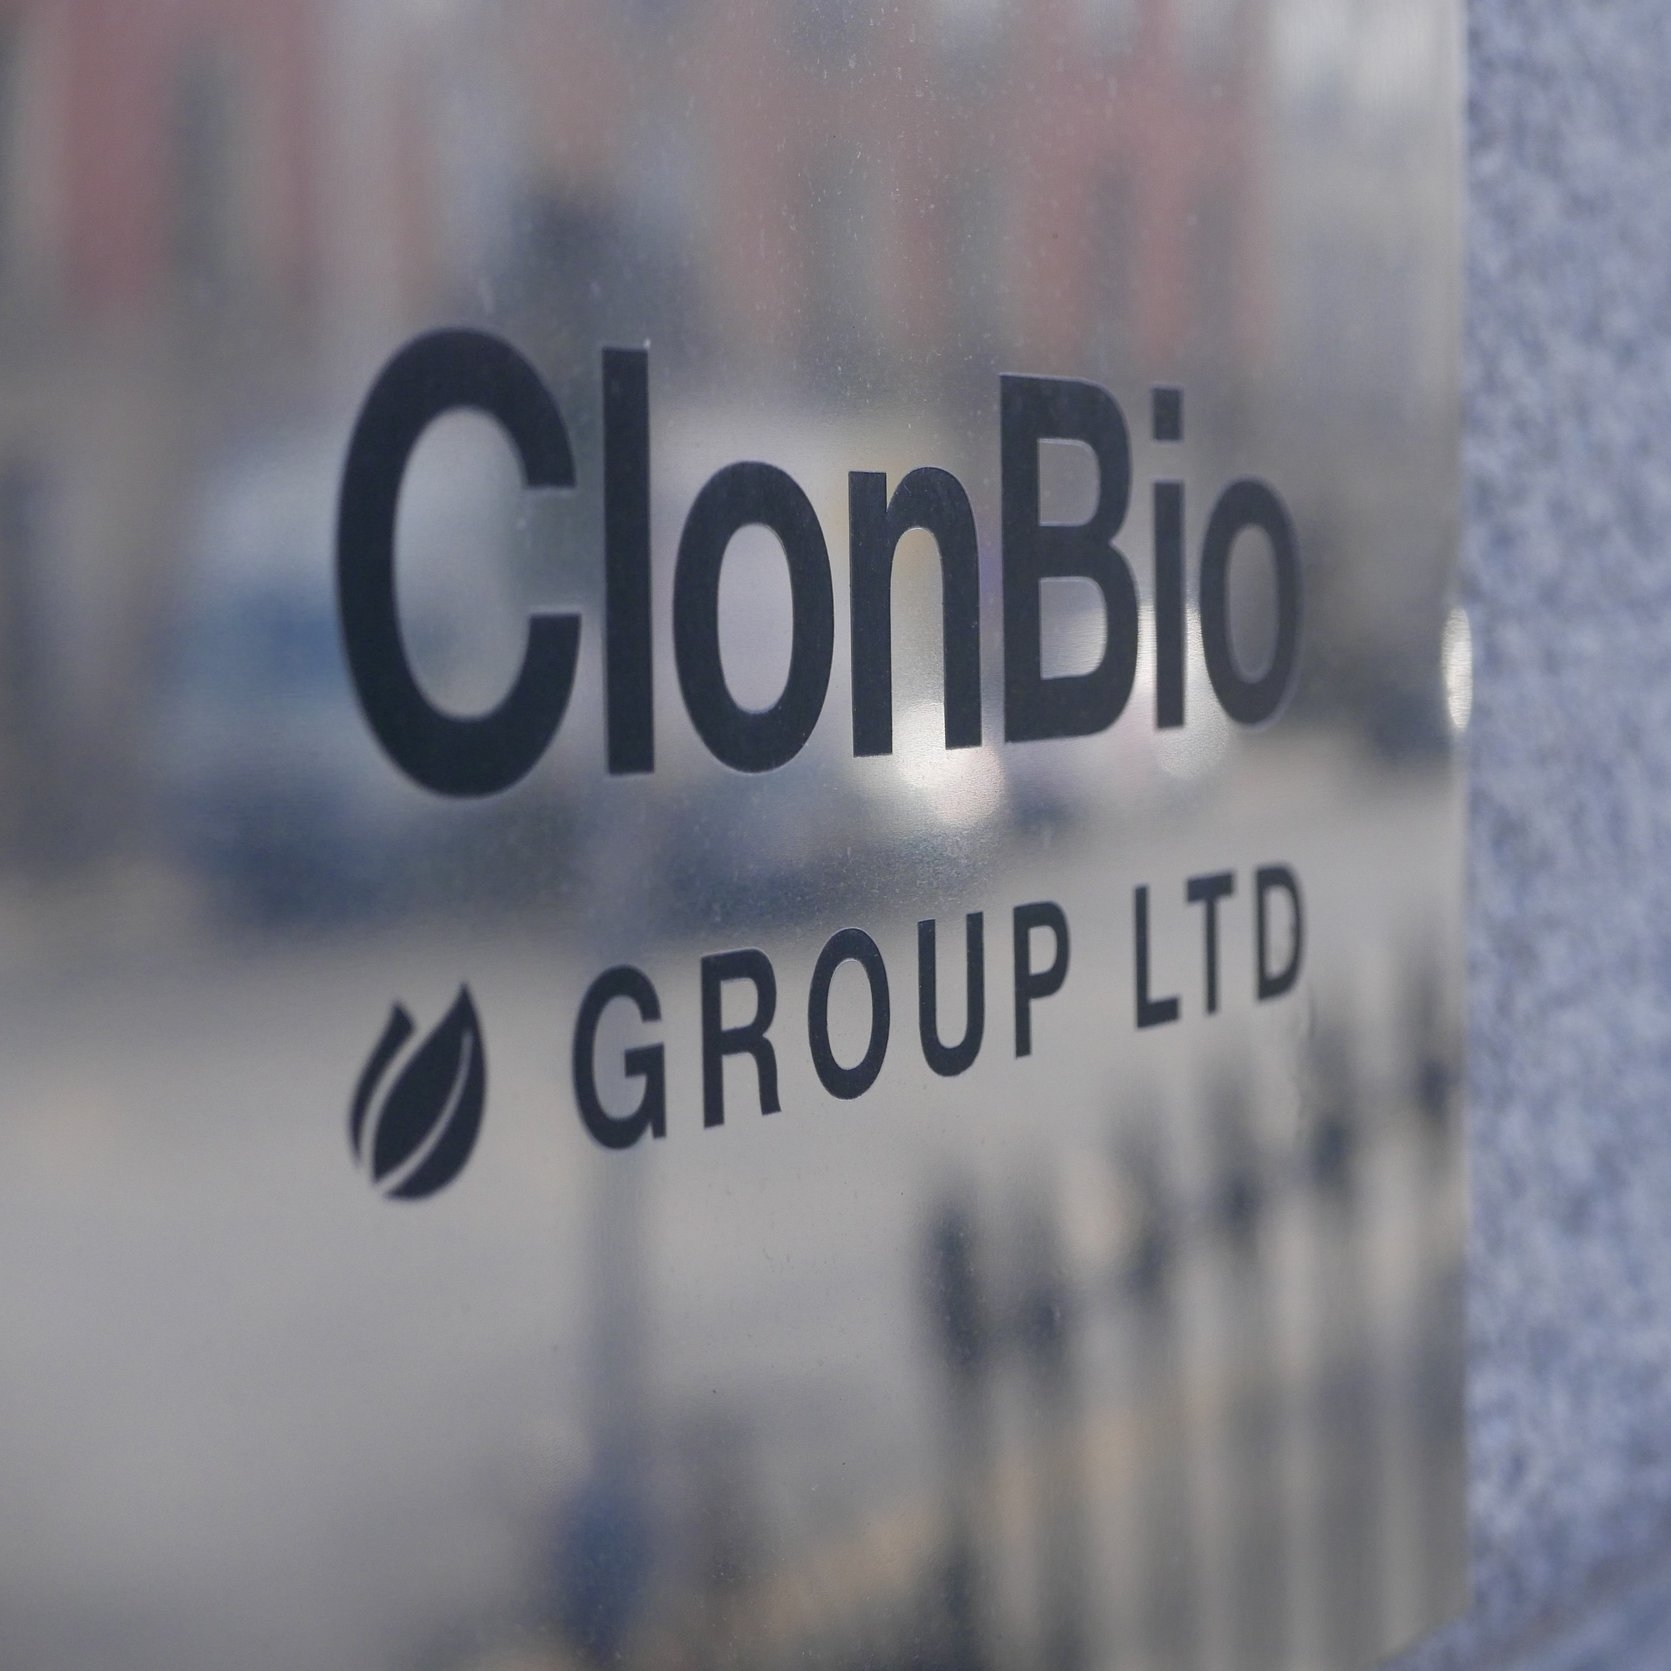 ClonBio - ClonBio Group Ltd is a family owned Irish agribusiness that manufactures sustainable bioproducts from grain. The Group is a market leader and large-scale producer of renewable energy and animal nutrition in Europe. ClonBio invests in biotechnology that creates commercially viable bioproducts.